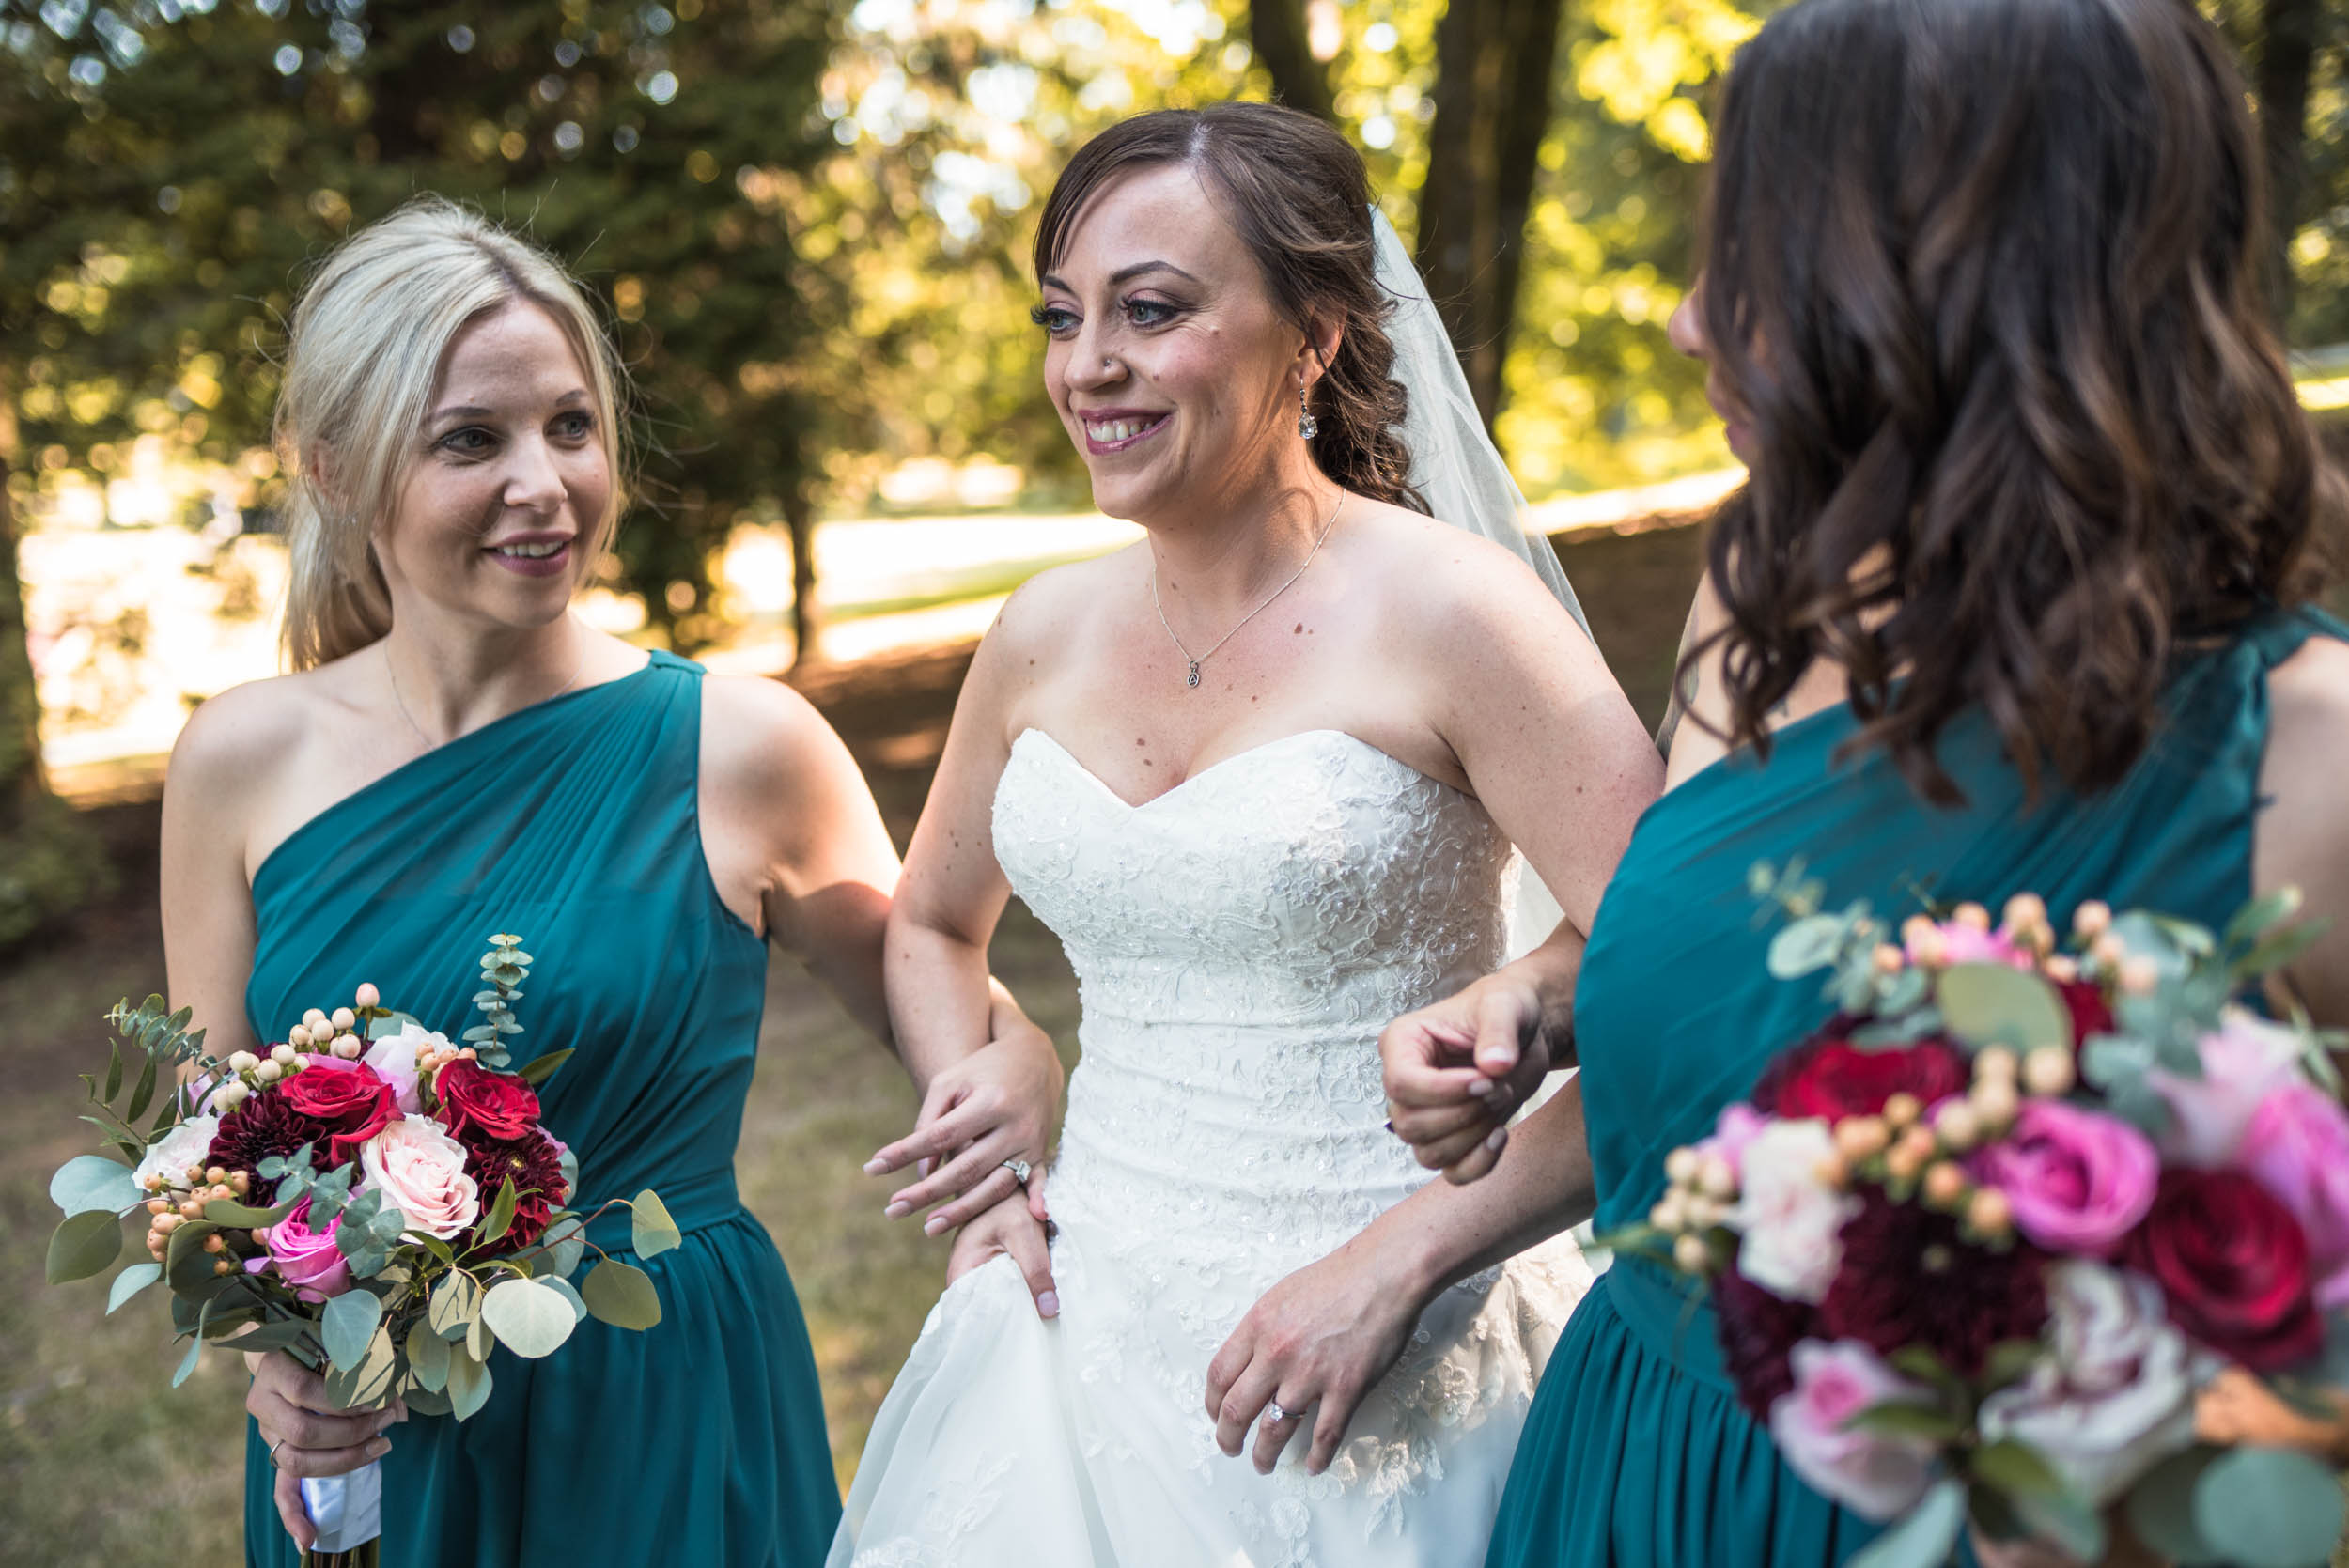 Bride and bridesmaids walk through forest